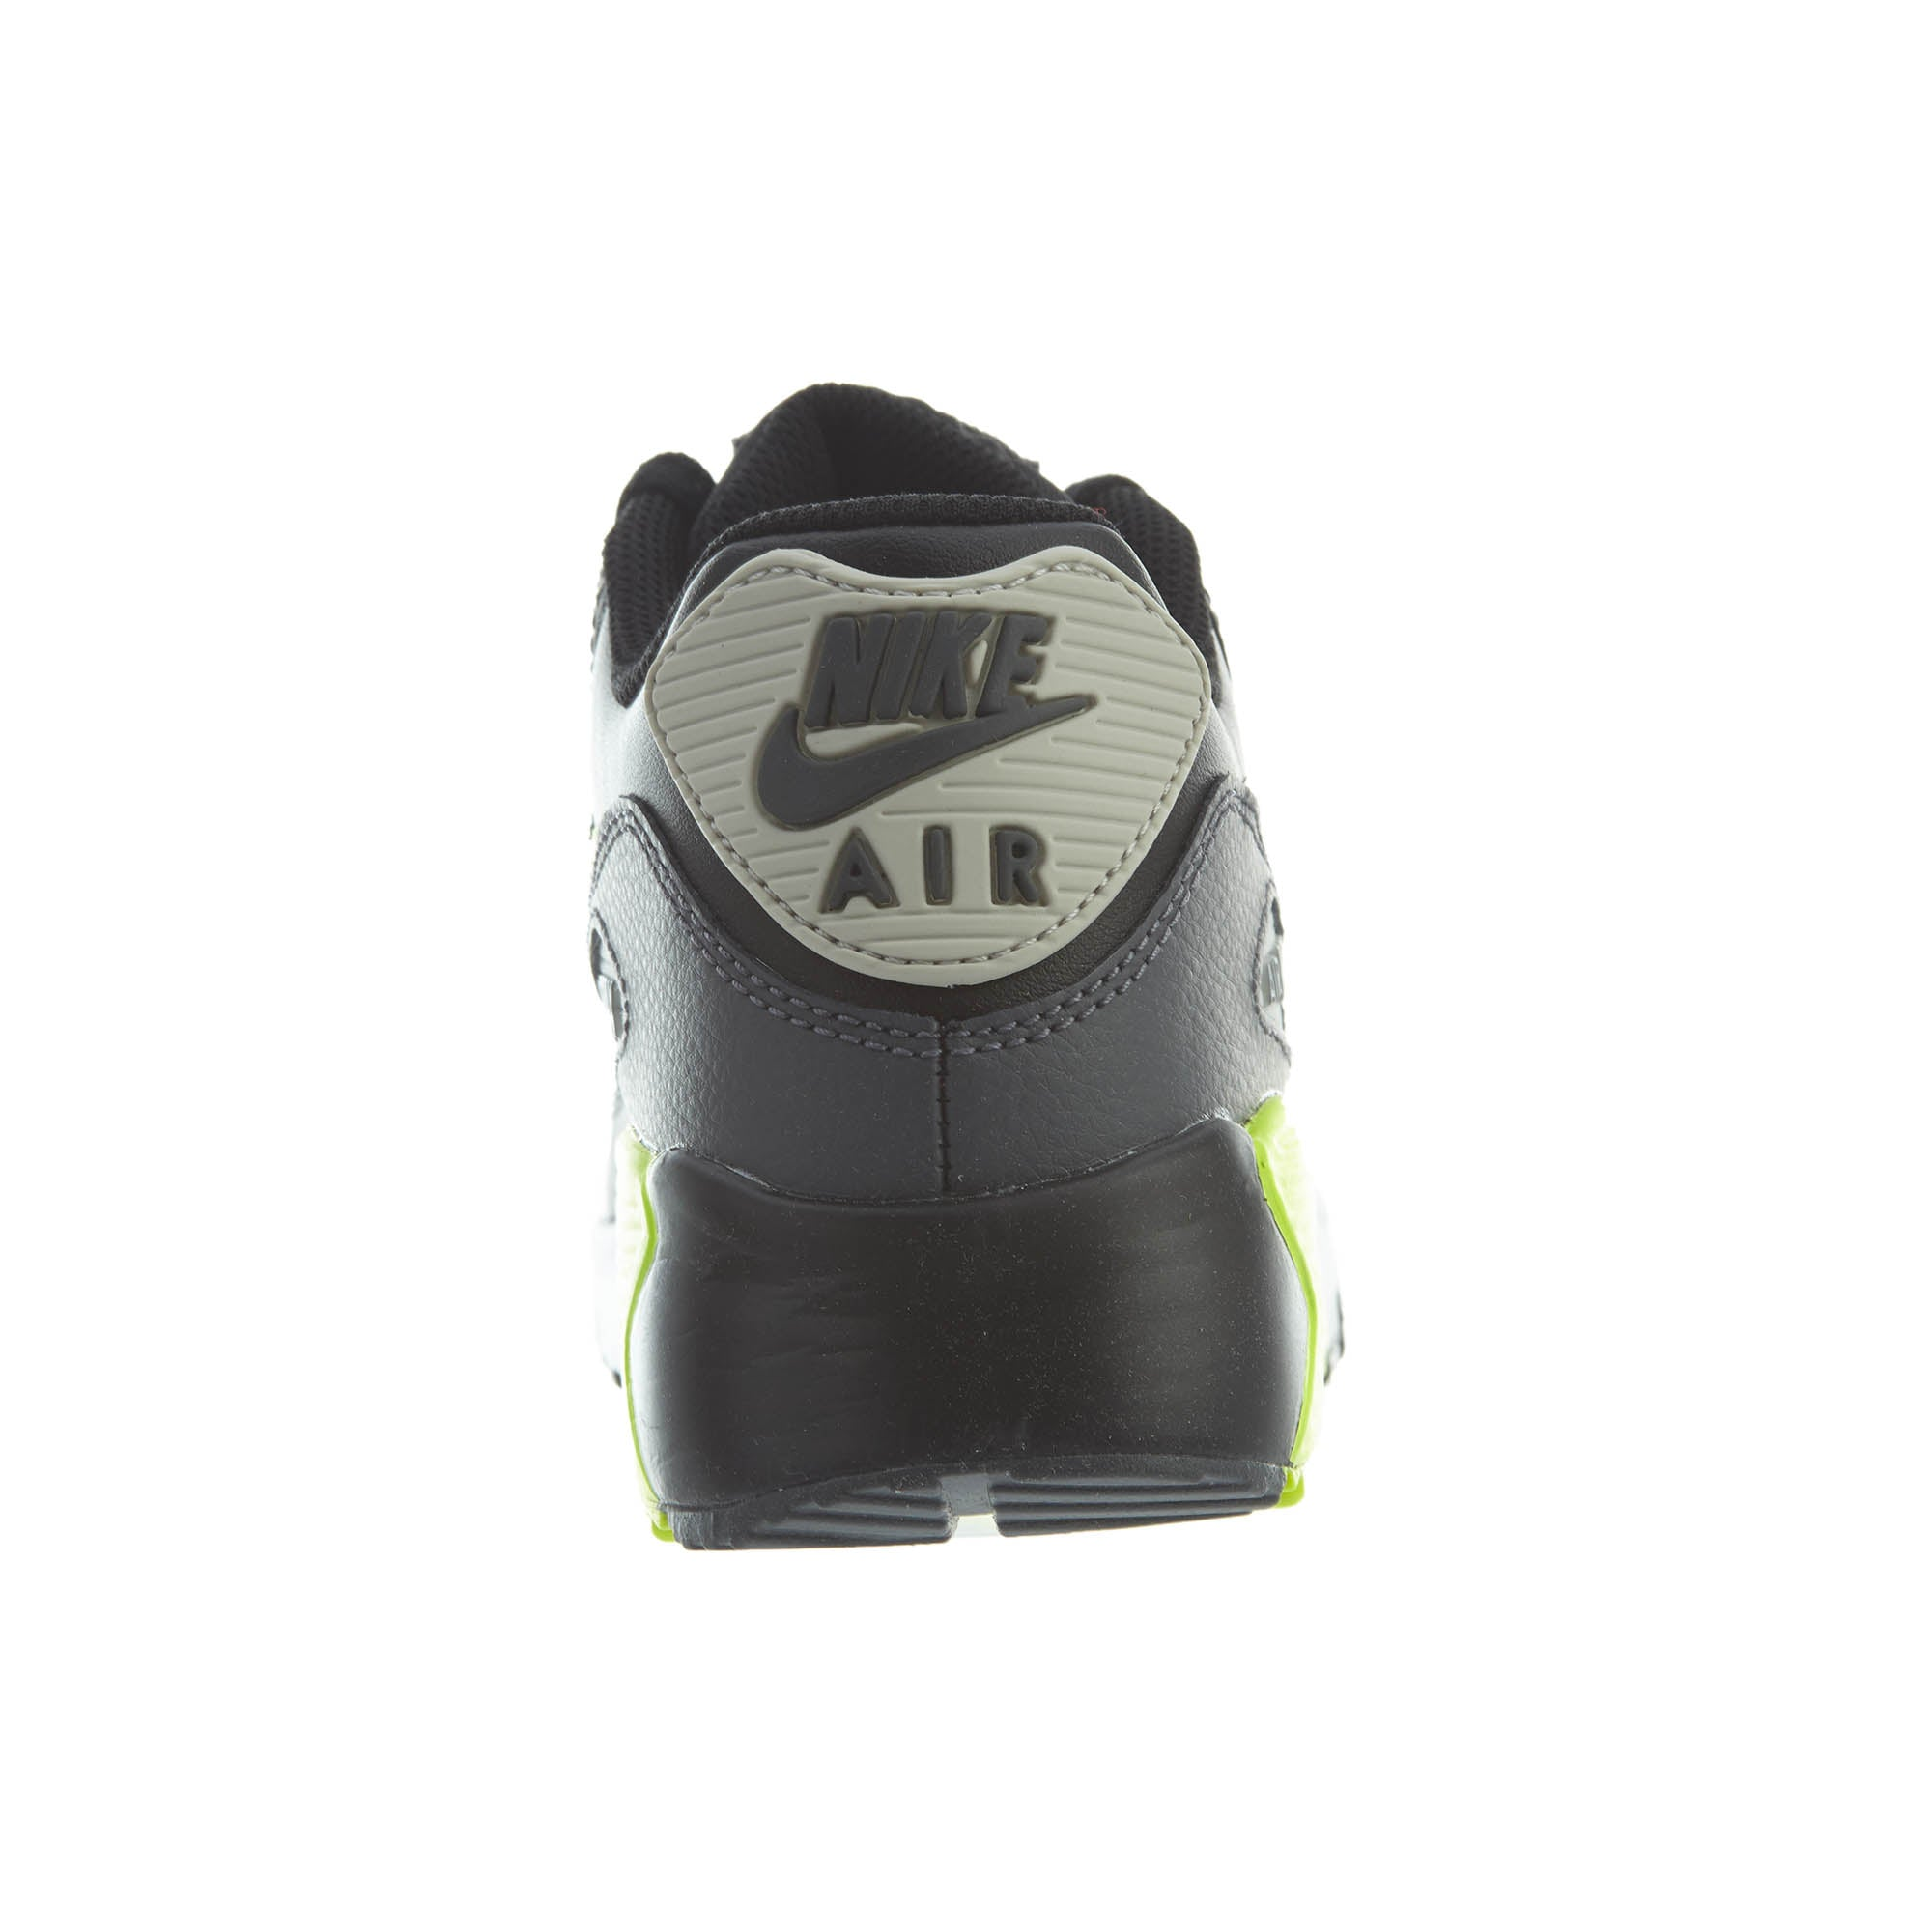 quality design 7a6fa 57e30 Nike Air Max 90 Ltr Big Kids Style   833412-023